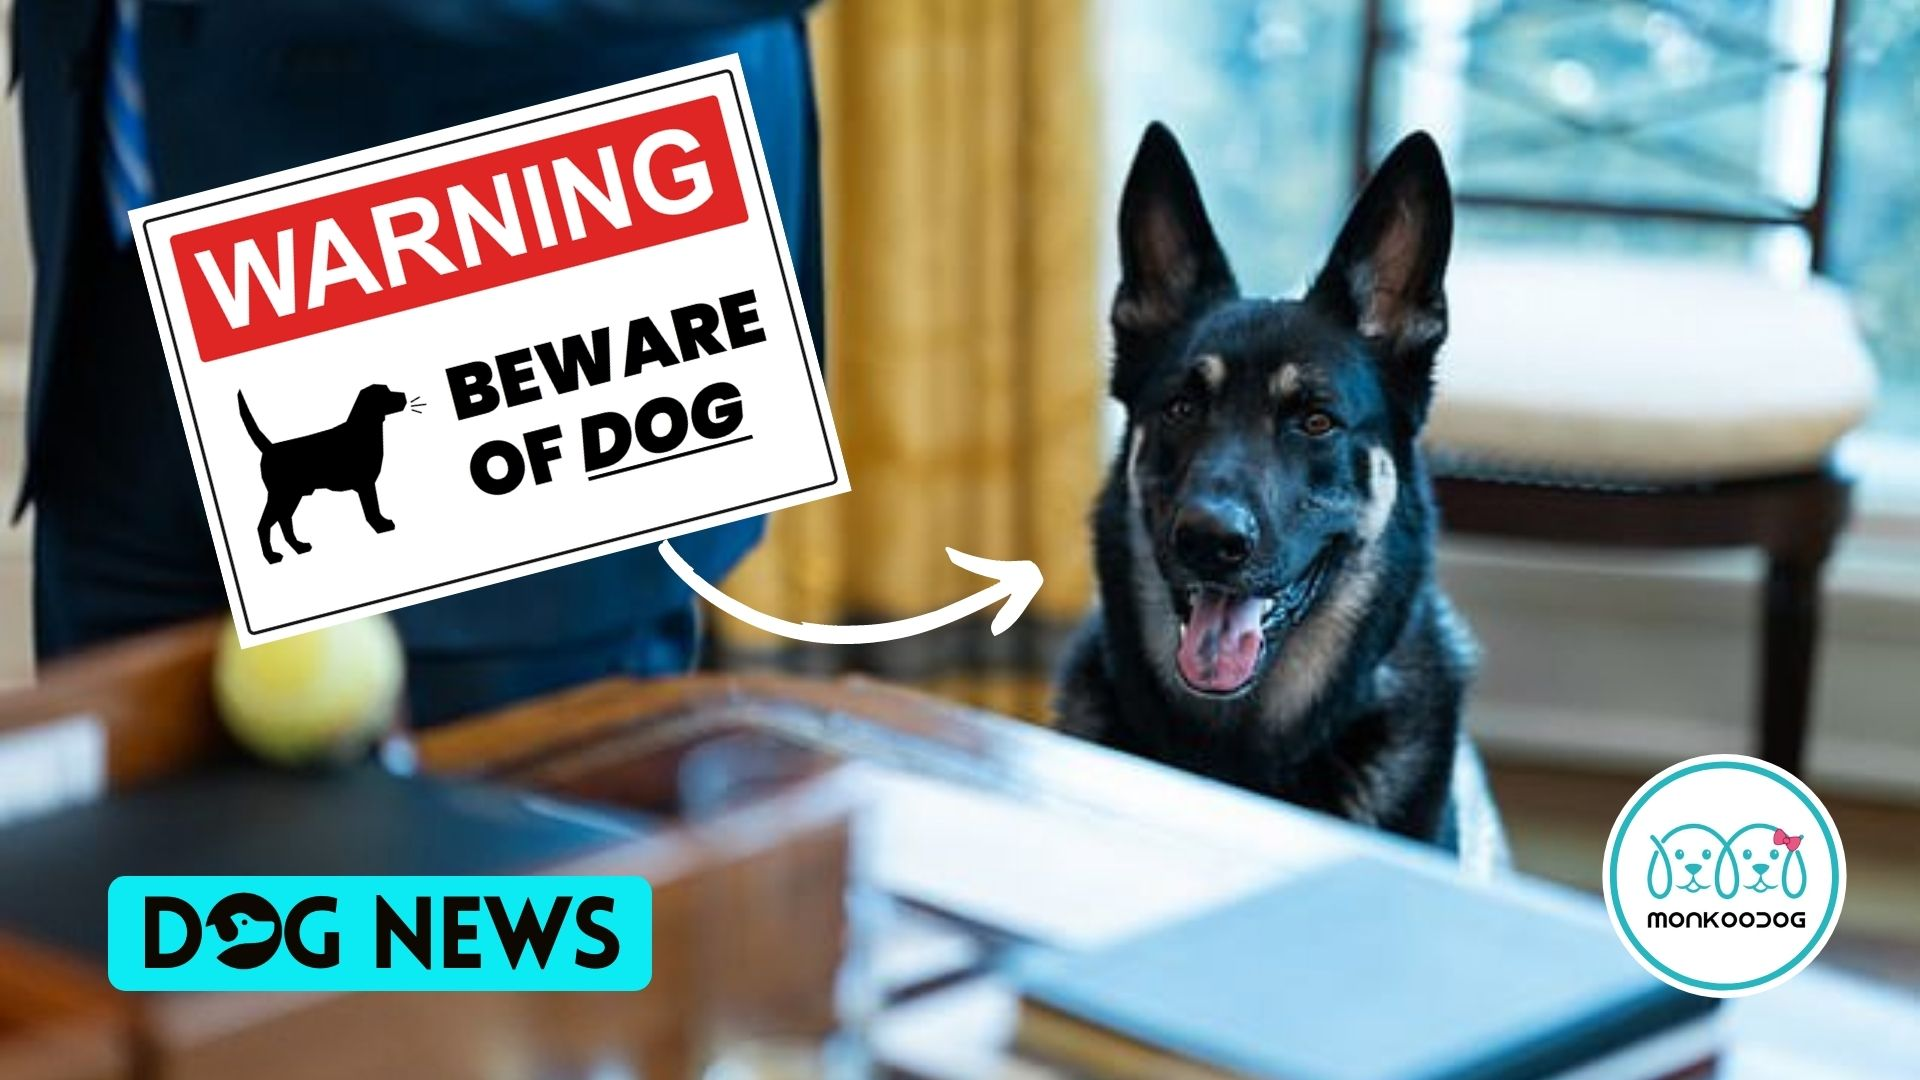 Email revealed Joe Biden's dog, Major, bit some Secret Service Agents repeatedly 8 days in a row.